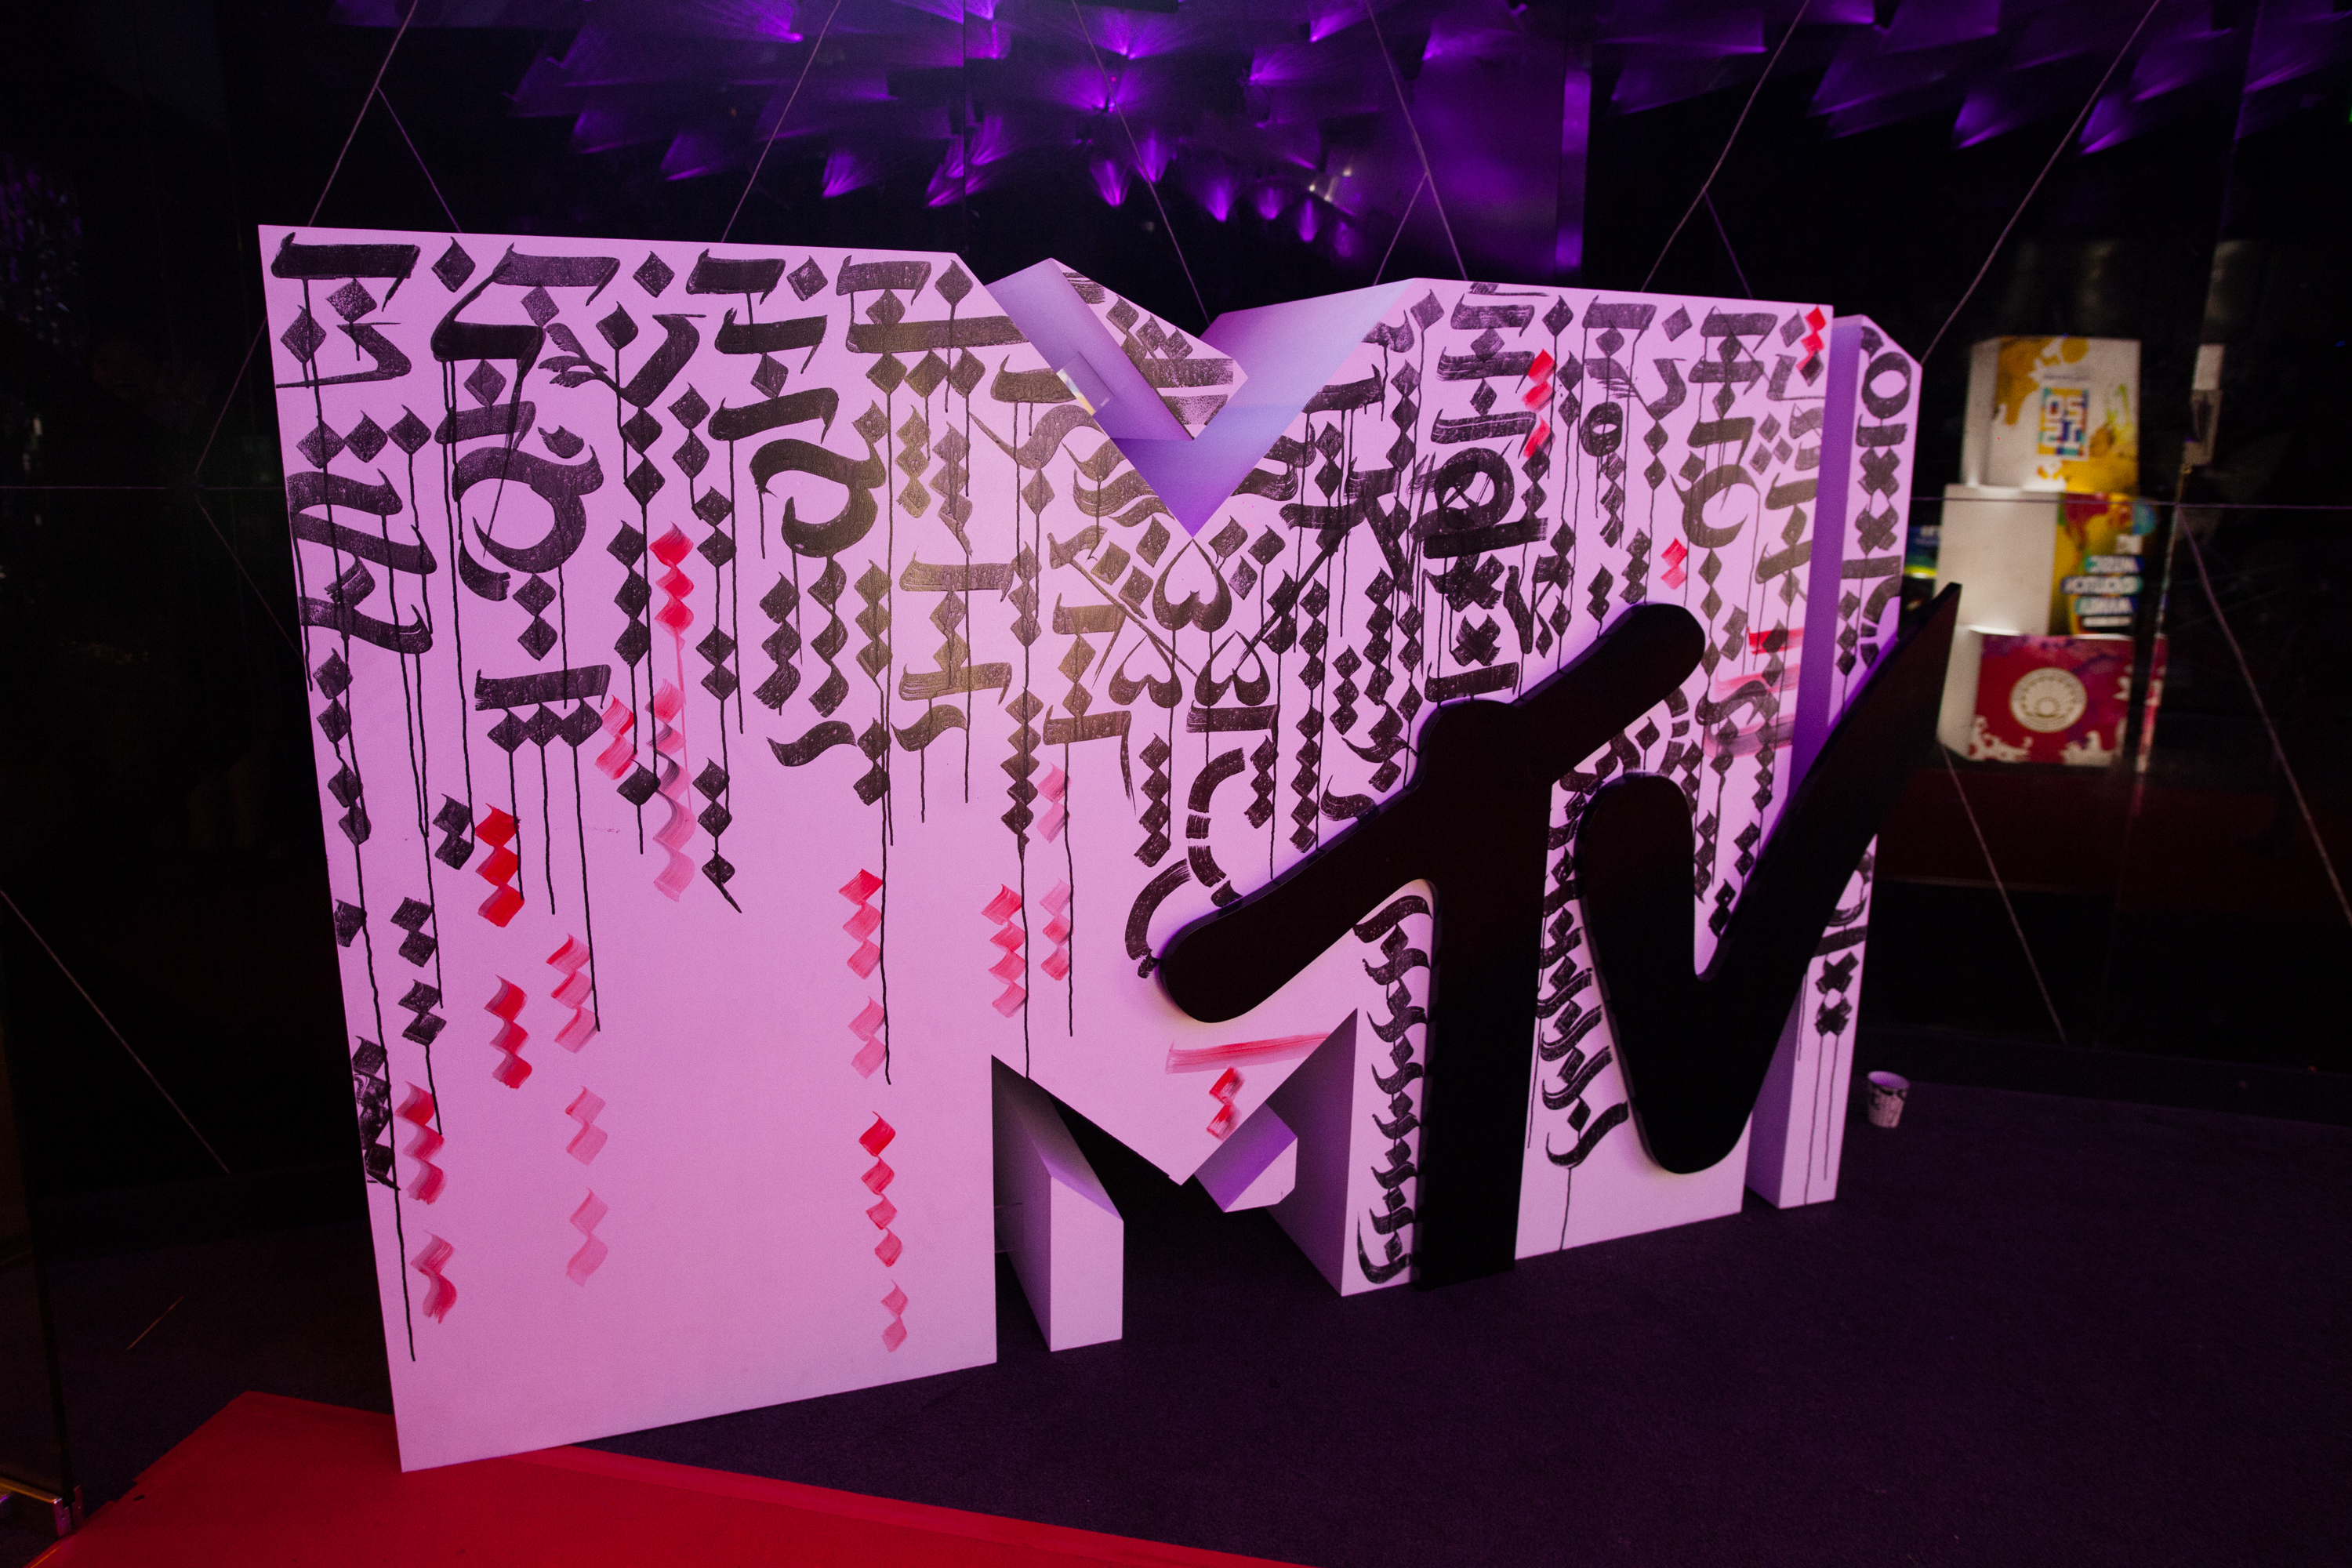 160650 mtv%20logo%20art%20piece%20by%20chichi%20monster%20for%20mtv%20music%20evolution%202015%20(credit%20 %20mtv%20asia) 5a7d1c original 1427357542